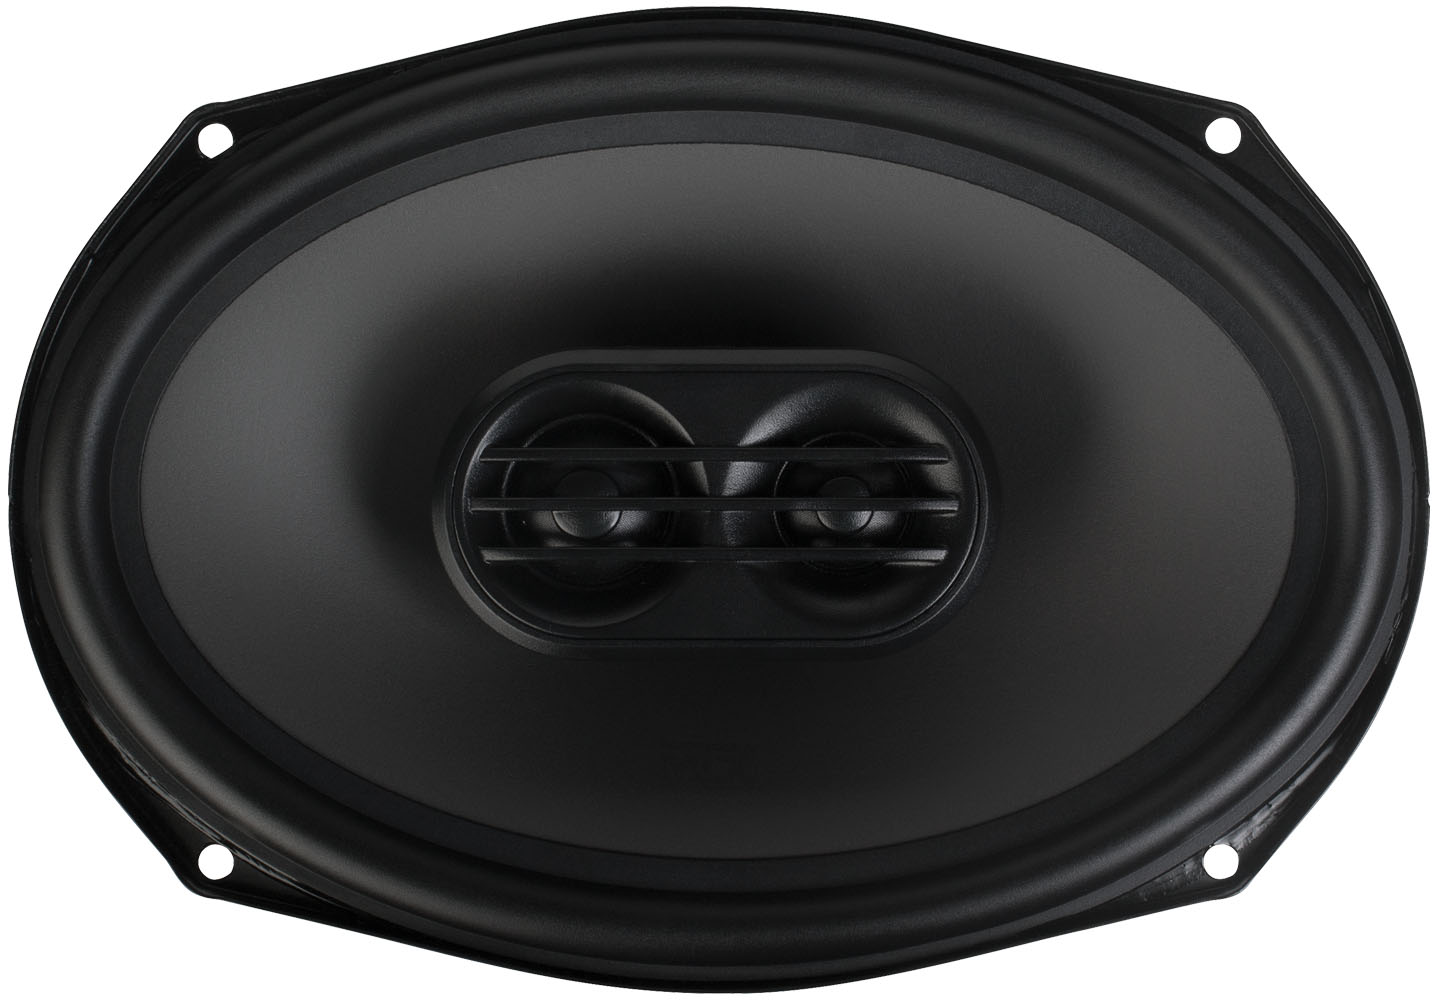 Upgrading Your Car Audio System by Replacing Stock Speakers | MTX